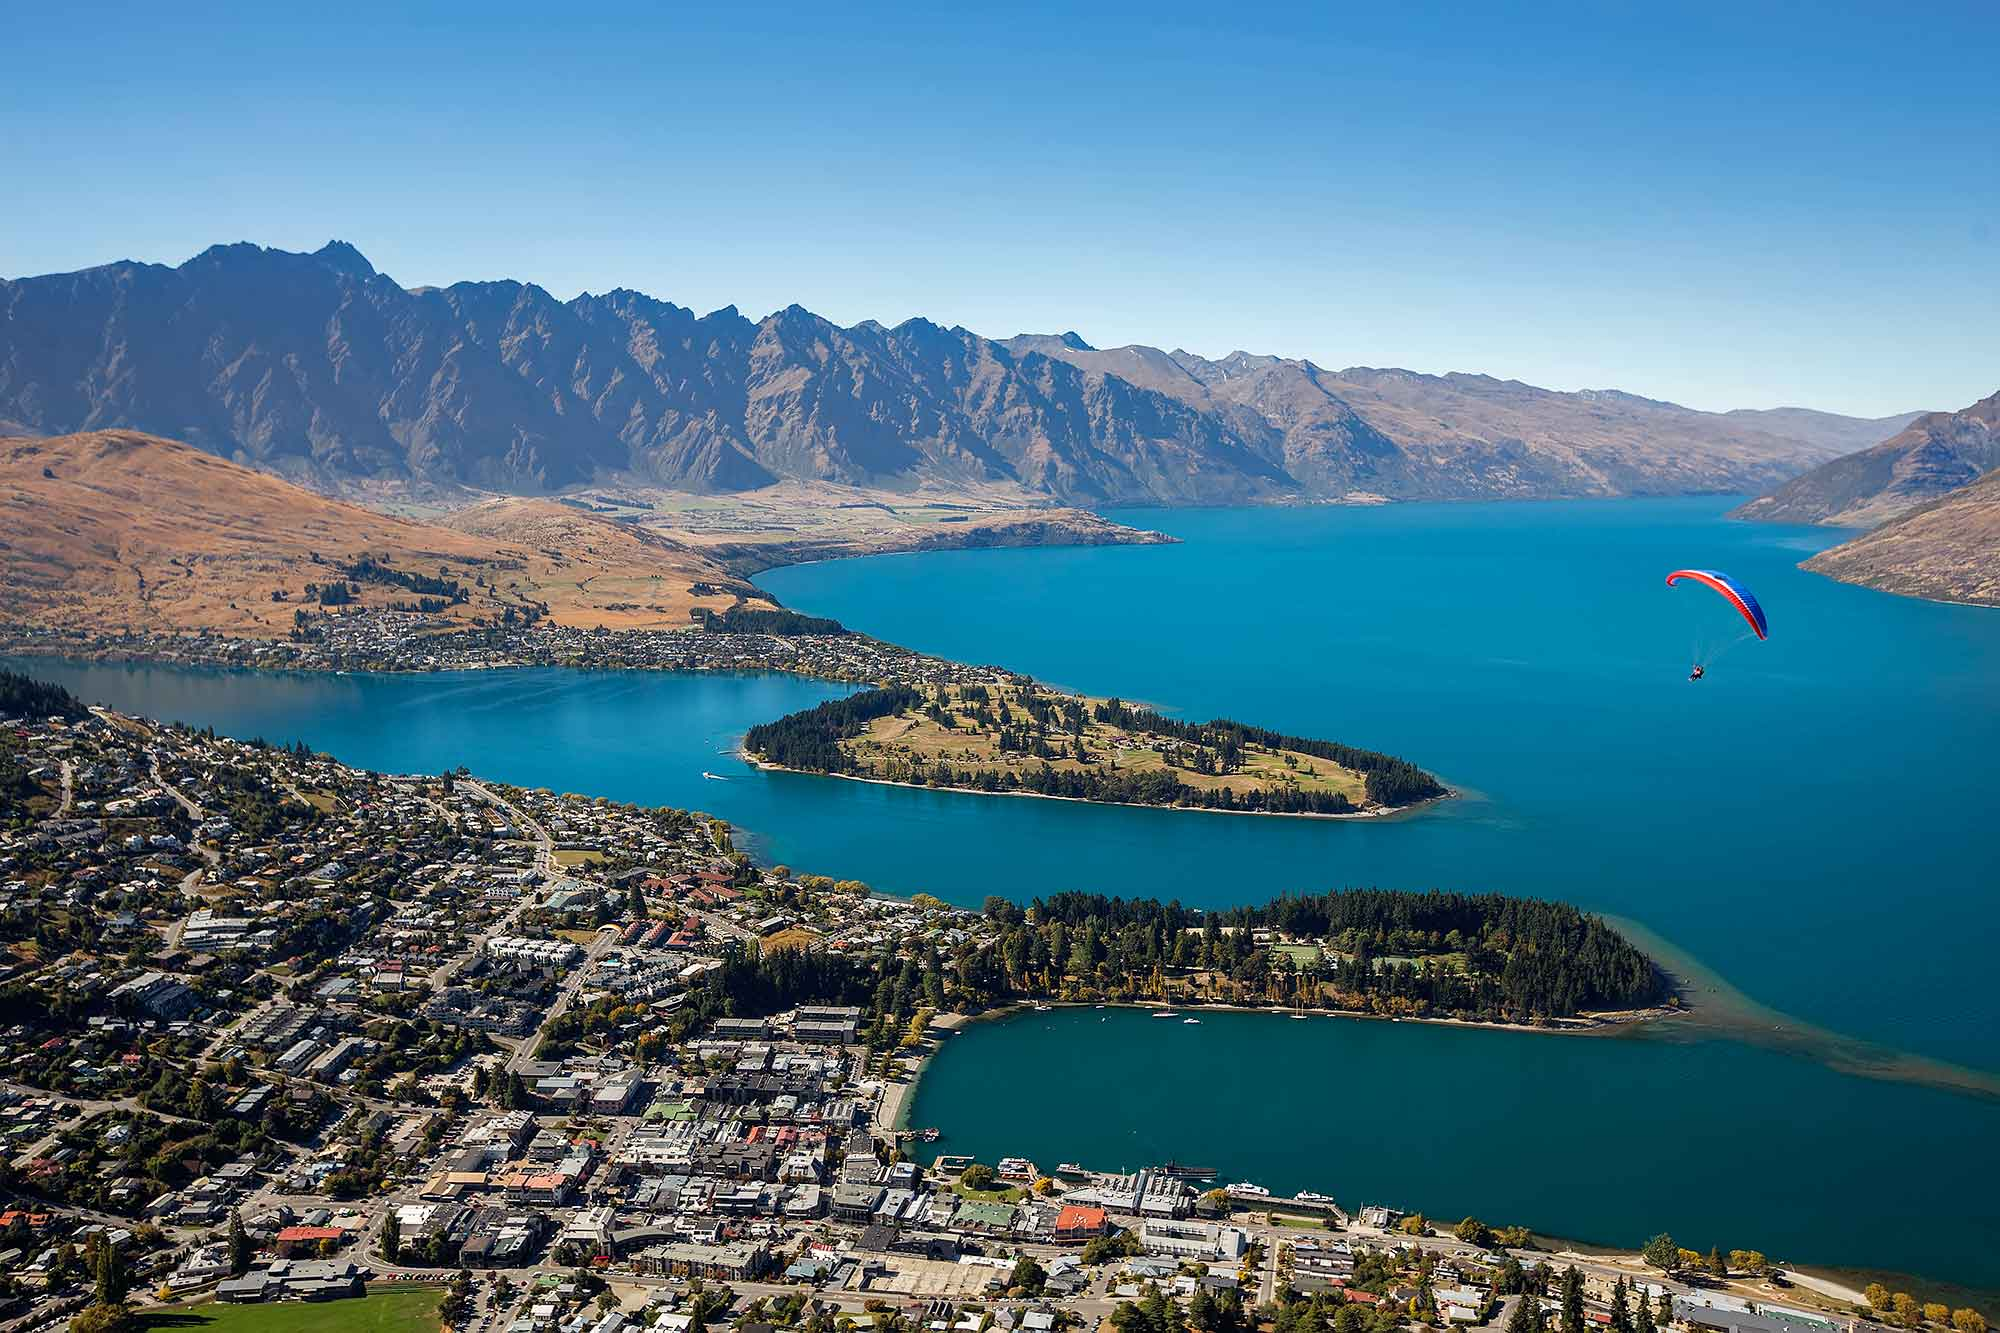 Queenstown on Lake Wakatipu, New Zealand. © Ulli Maier & Nisa Maier